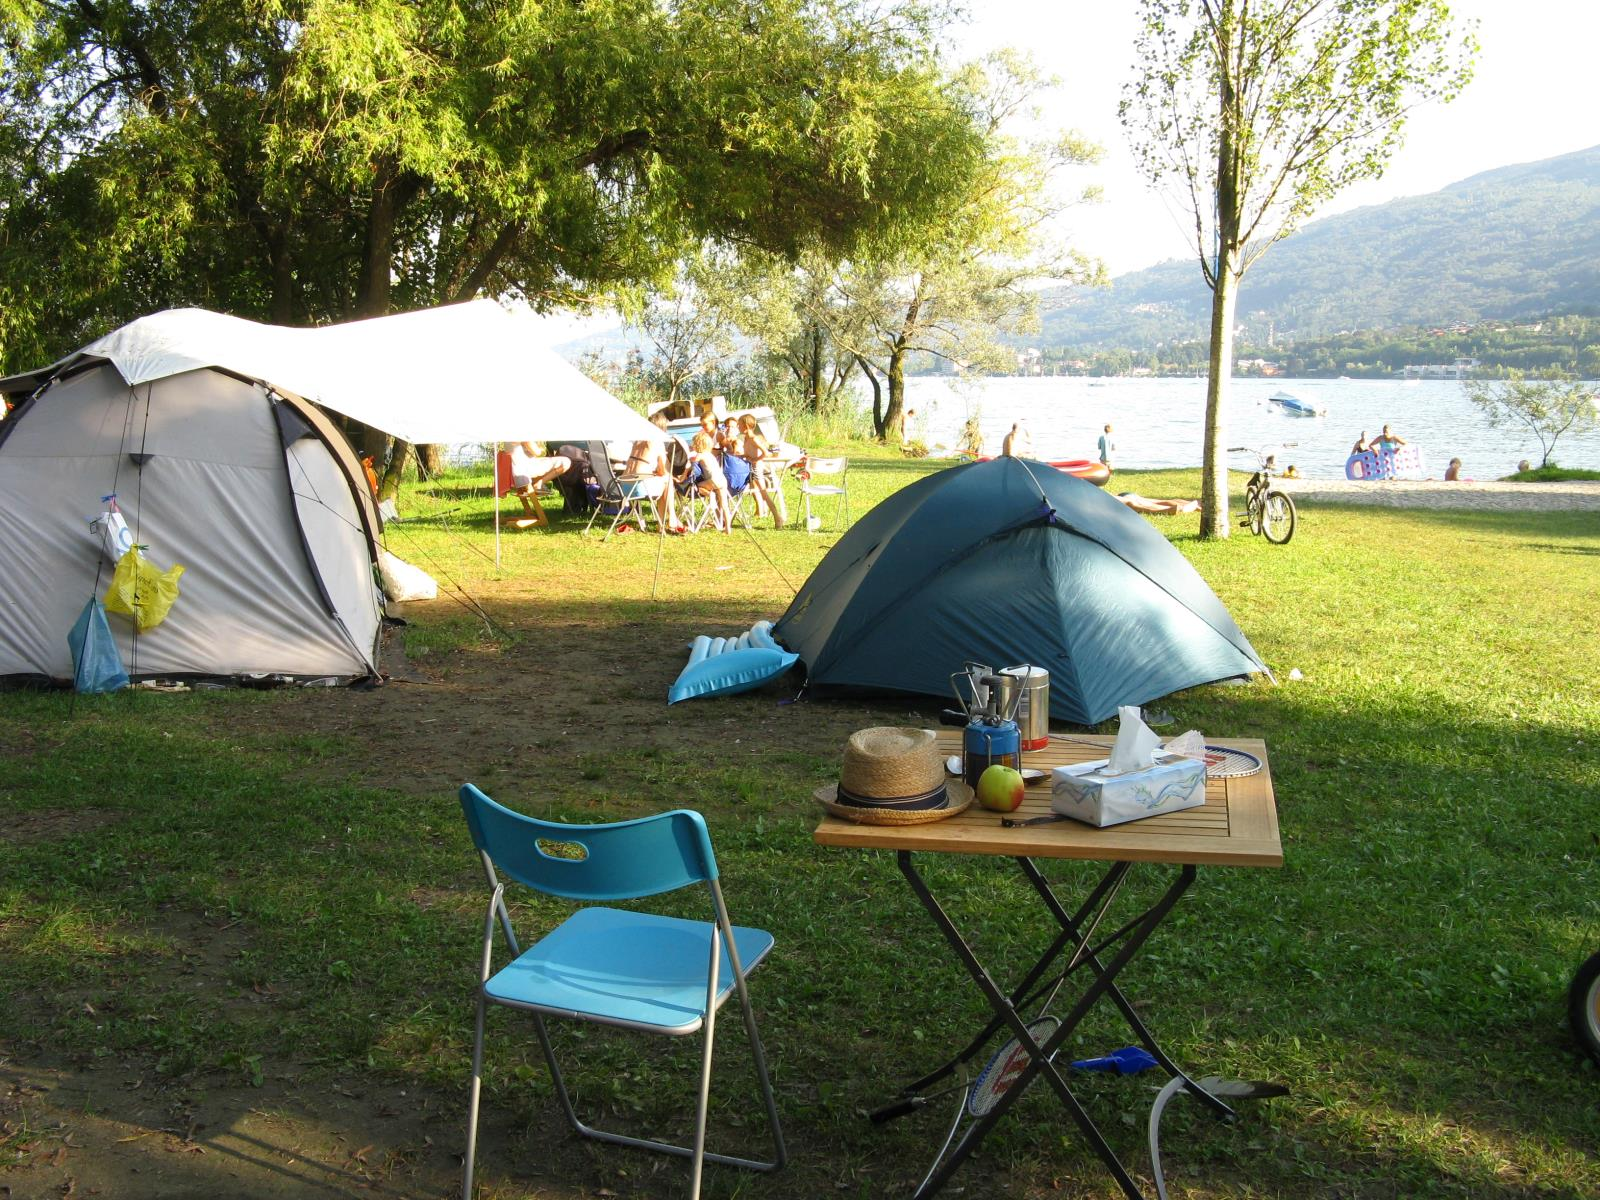 Pitch - Package A 4 Nights - Camping Lido Toce